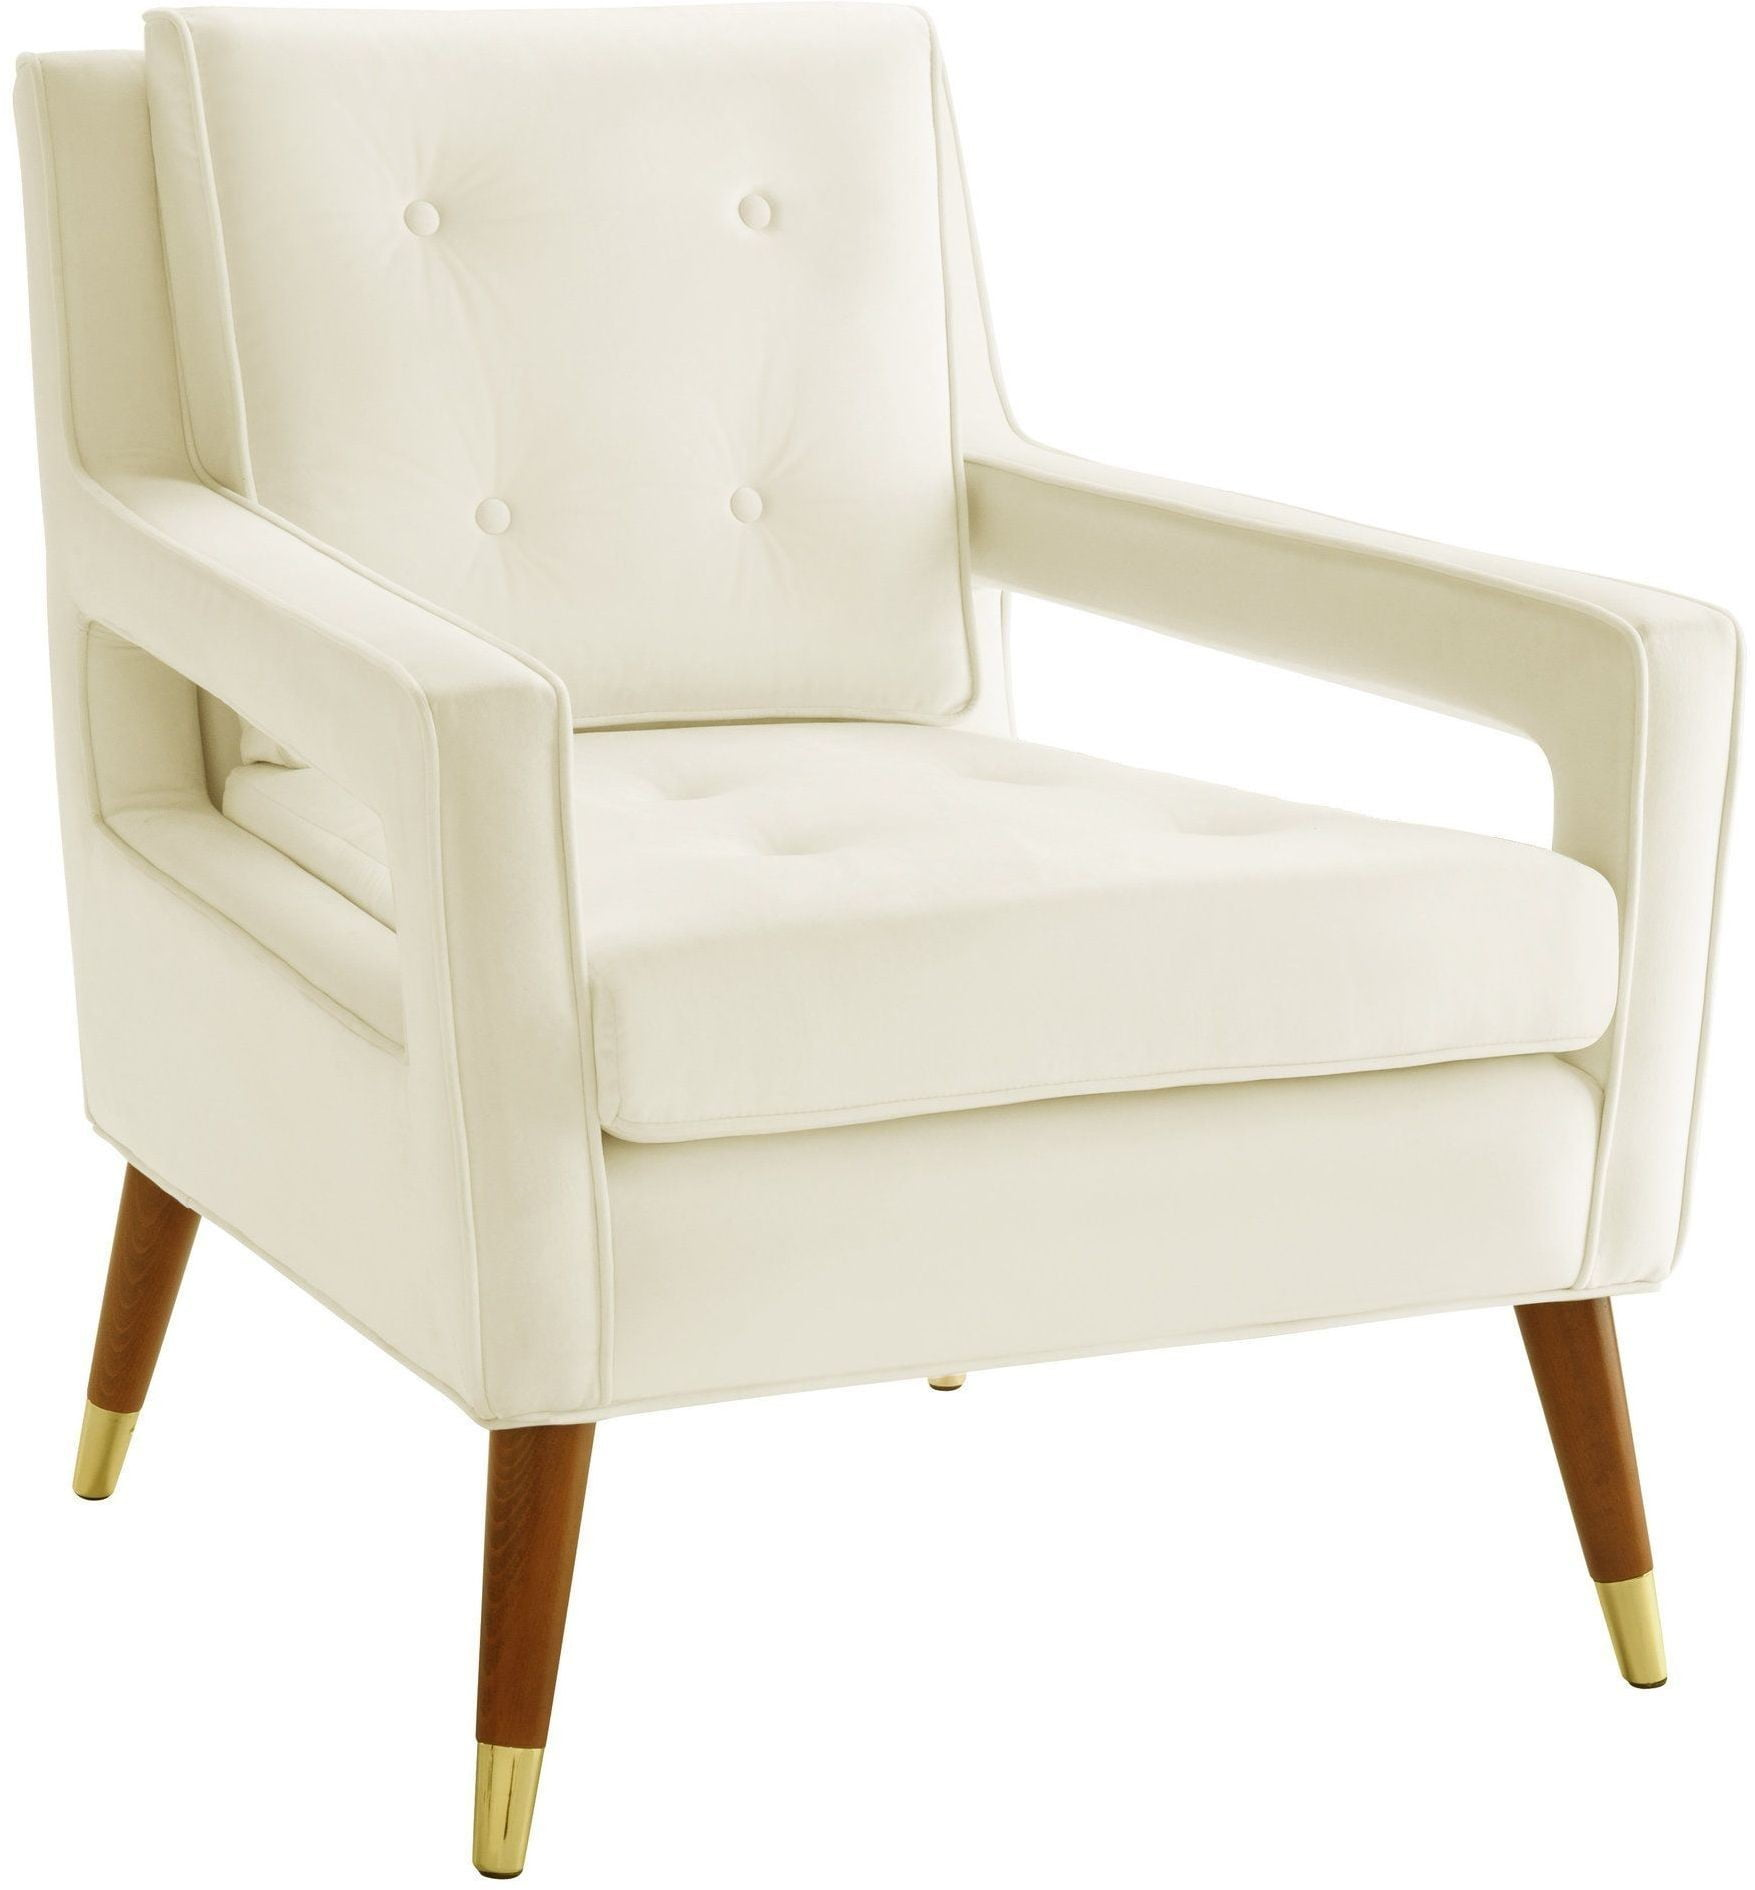 cream velvet armchair draper cream velvet chair from tov coleman furniture 13628 | tov a151 tov